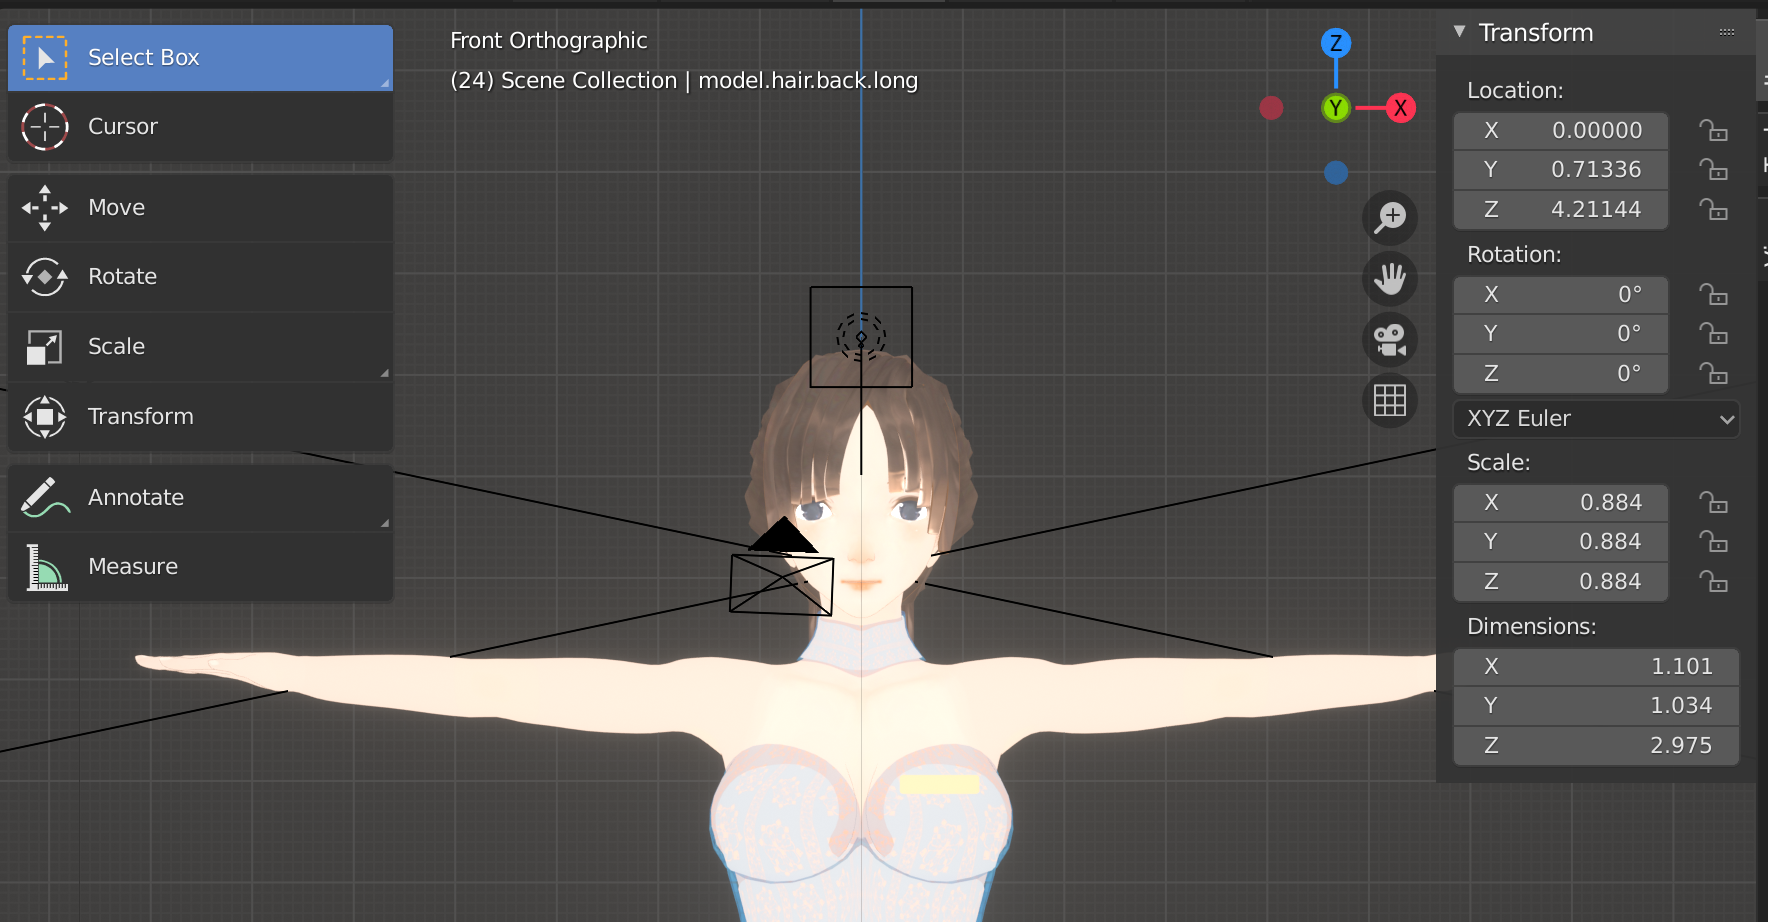 Base Female Model with Anime Face preview image 1